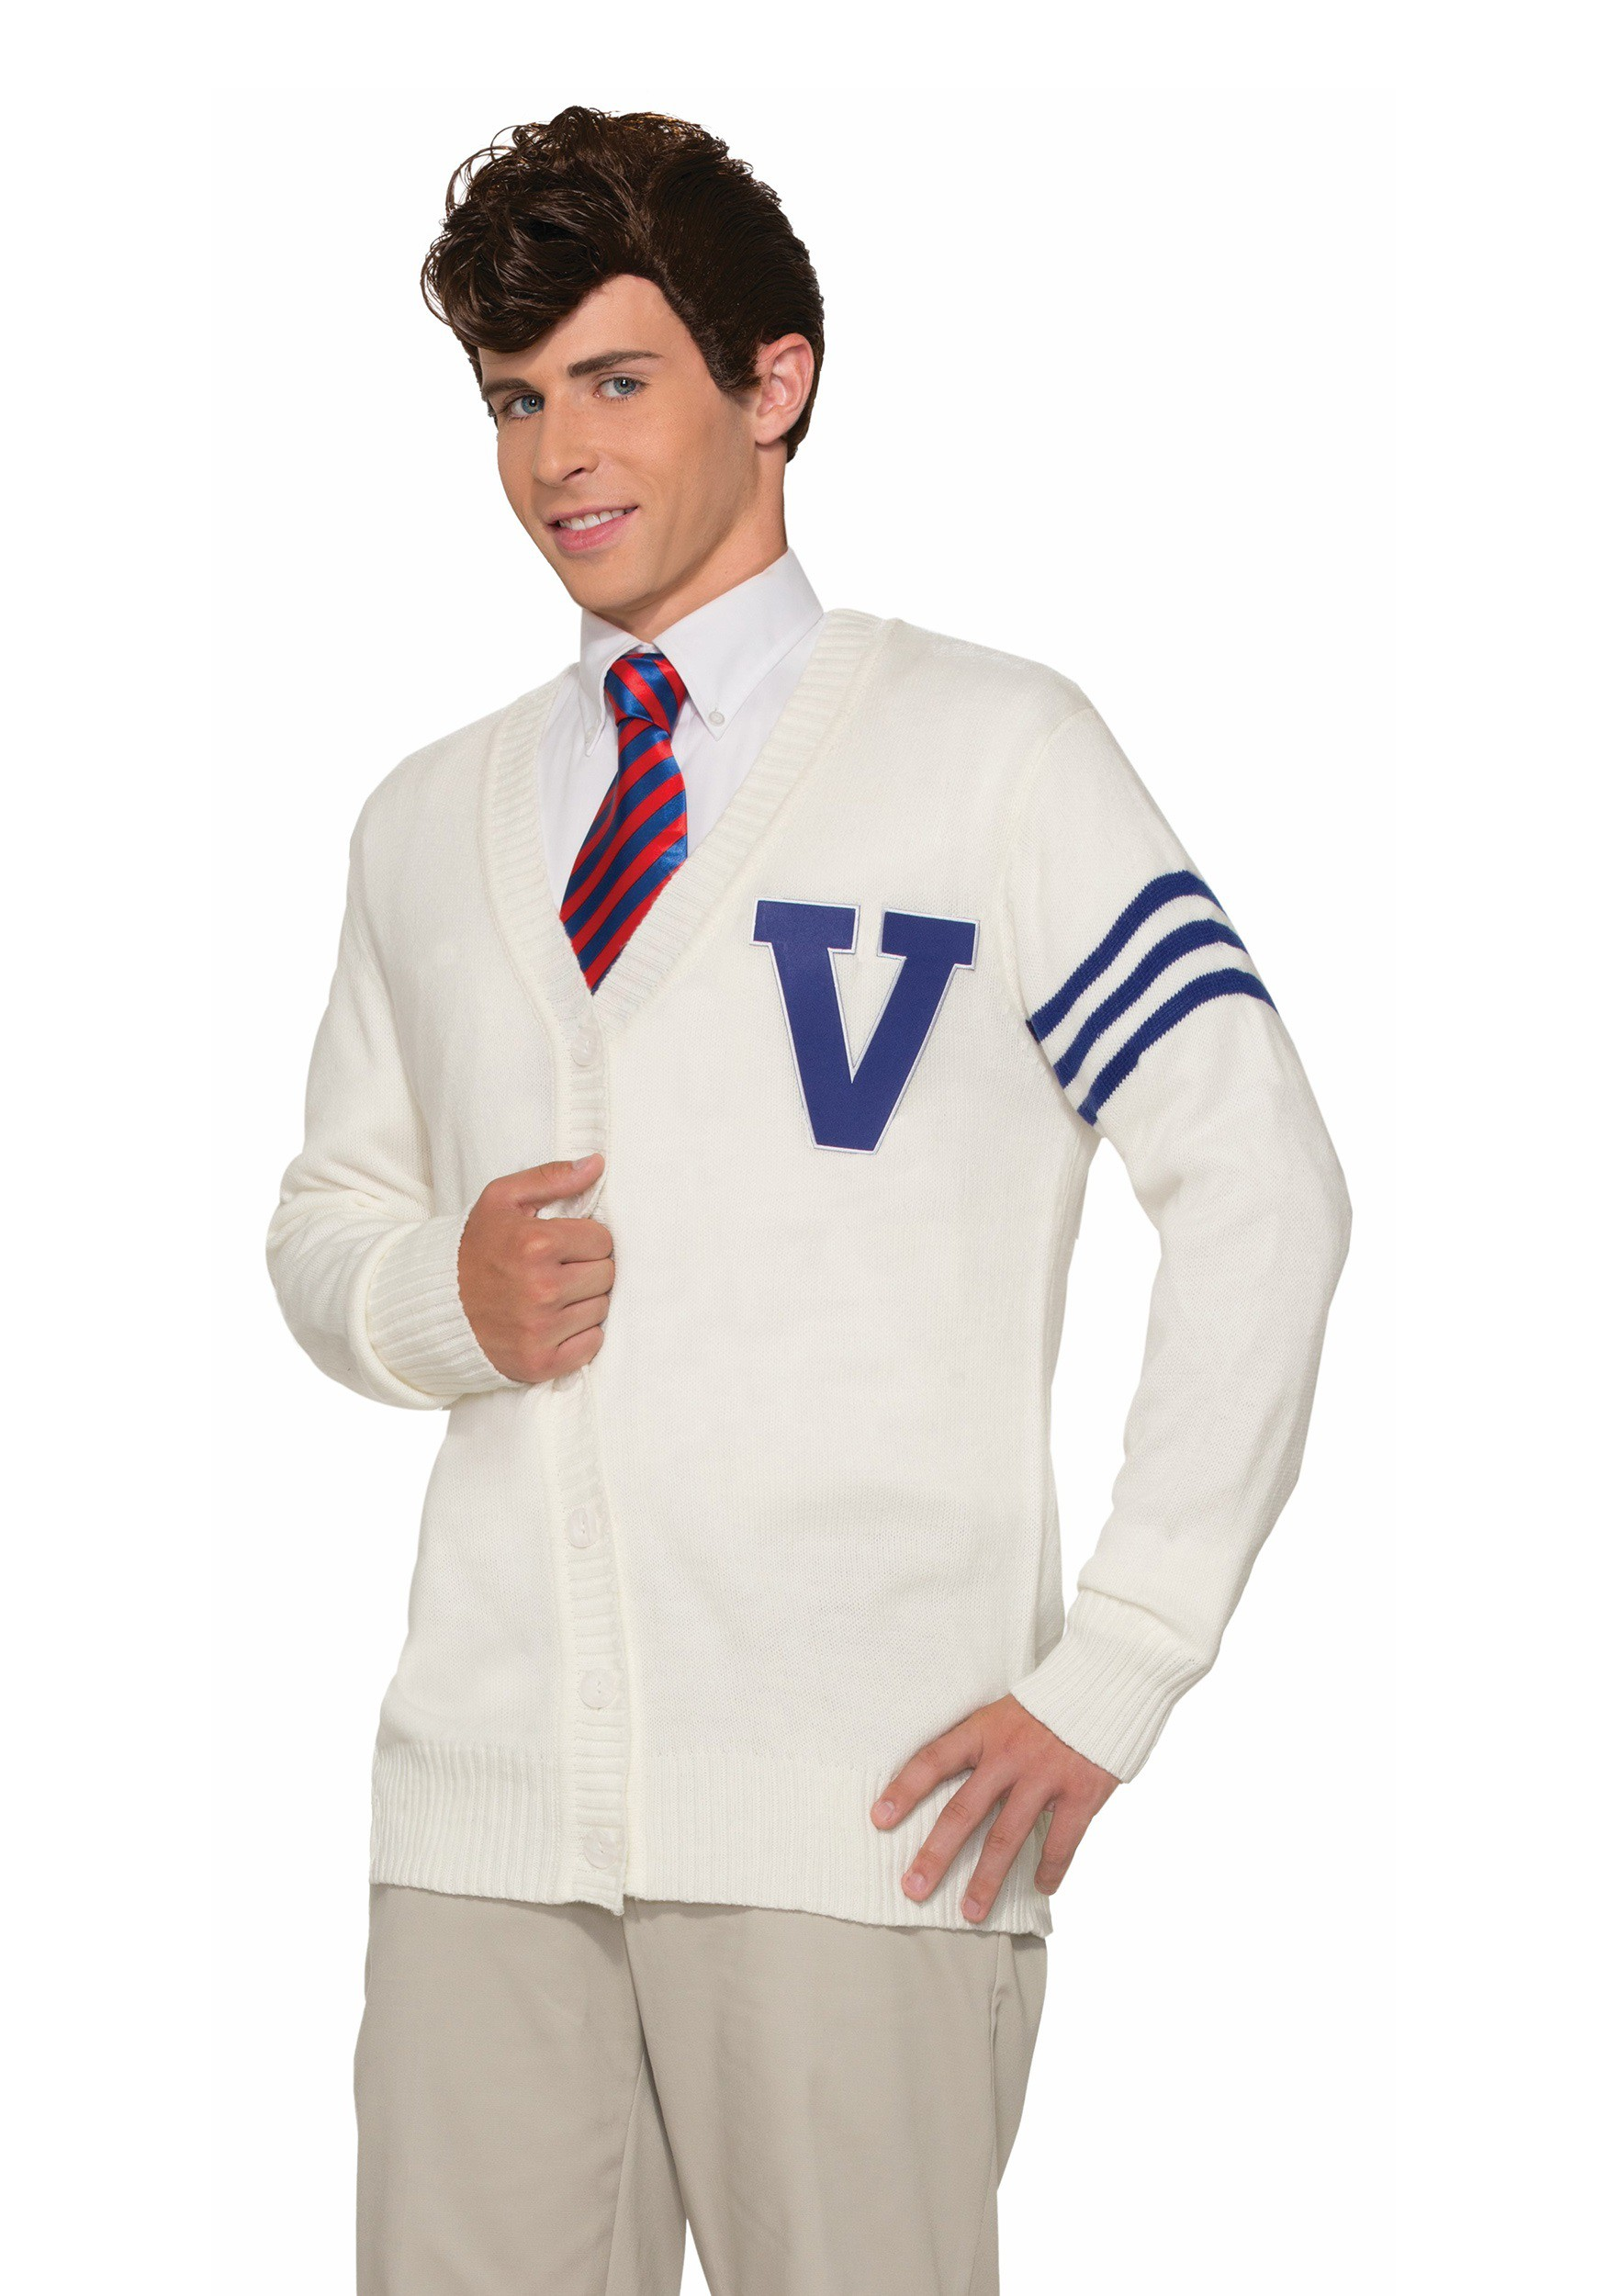 Men's Varsity Sweater Costume